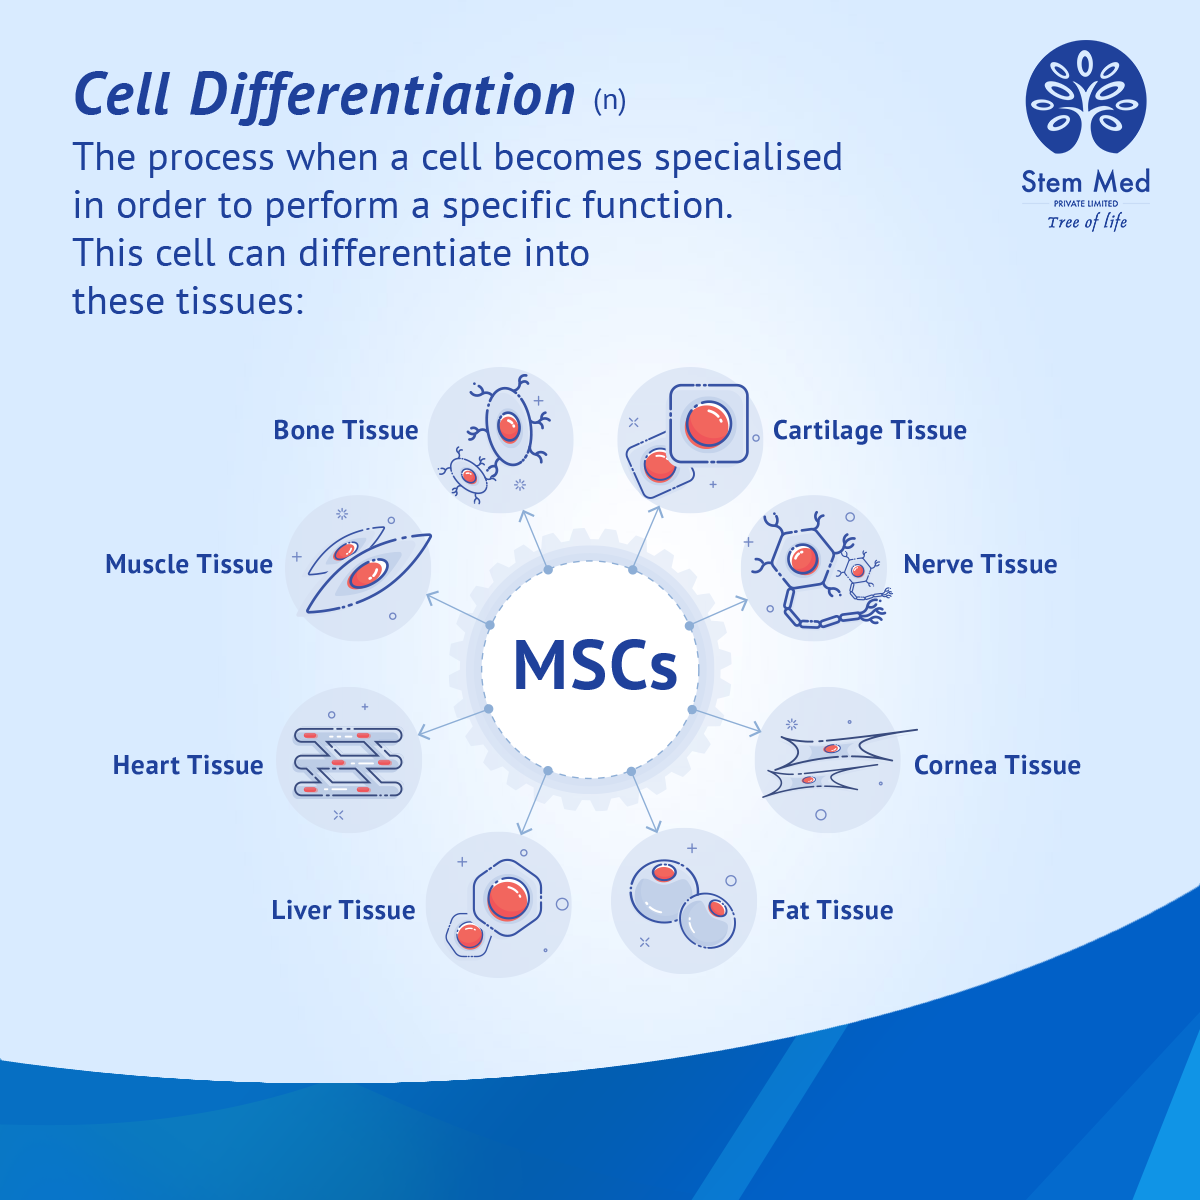 Stem Cell Differentiation